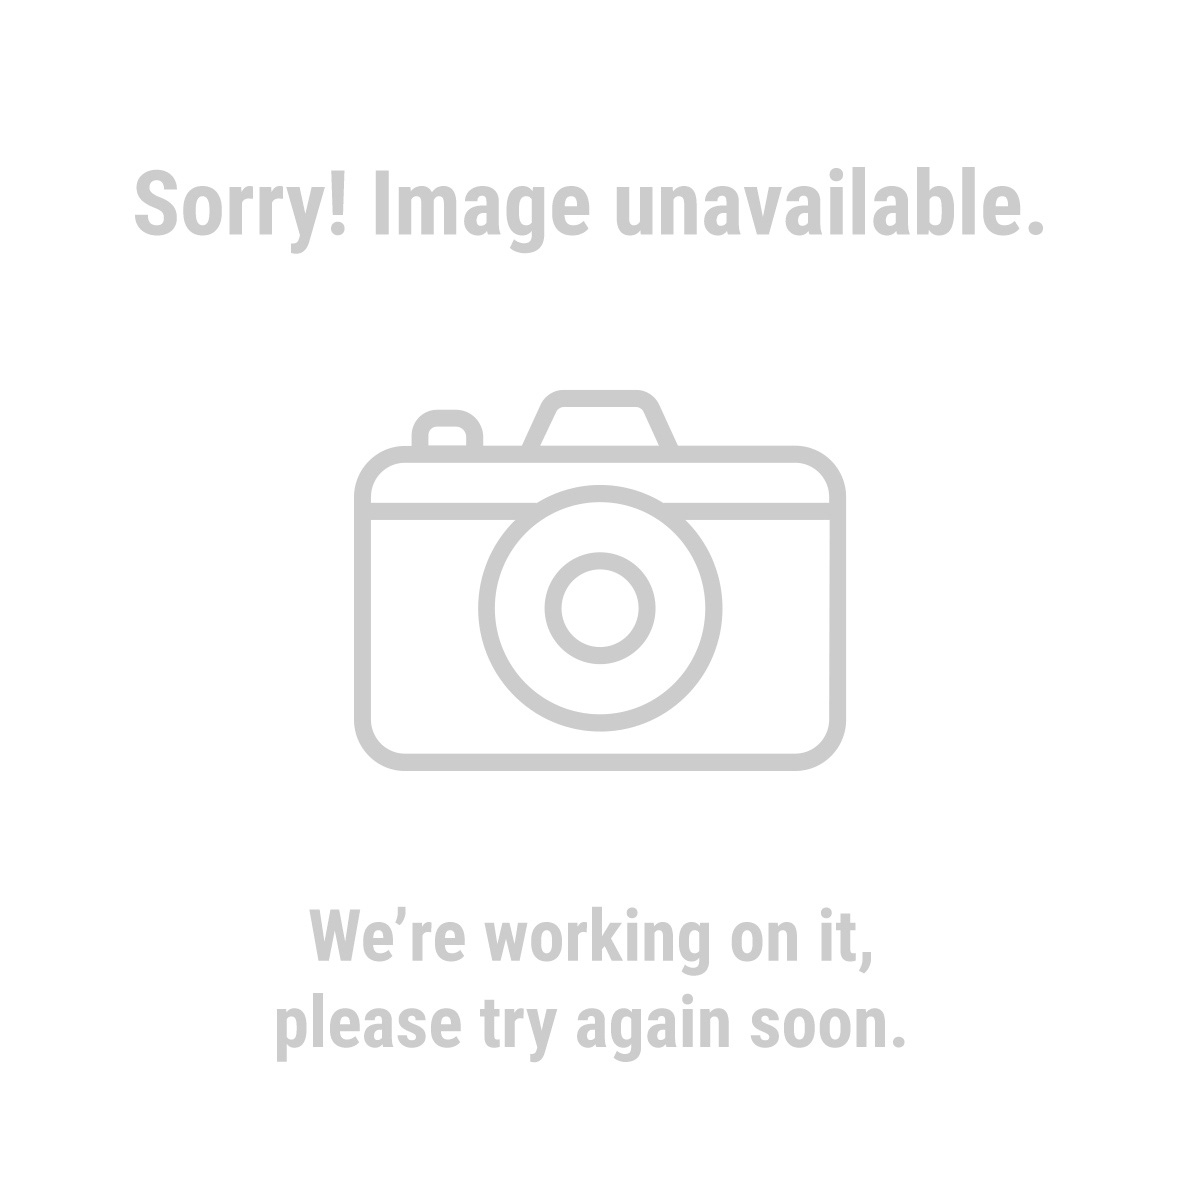 oscillating saw harbor freight. 7 in. 10 amp heavy duty digital variable speed polisher oscillating saw harbor freight